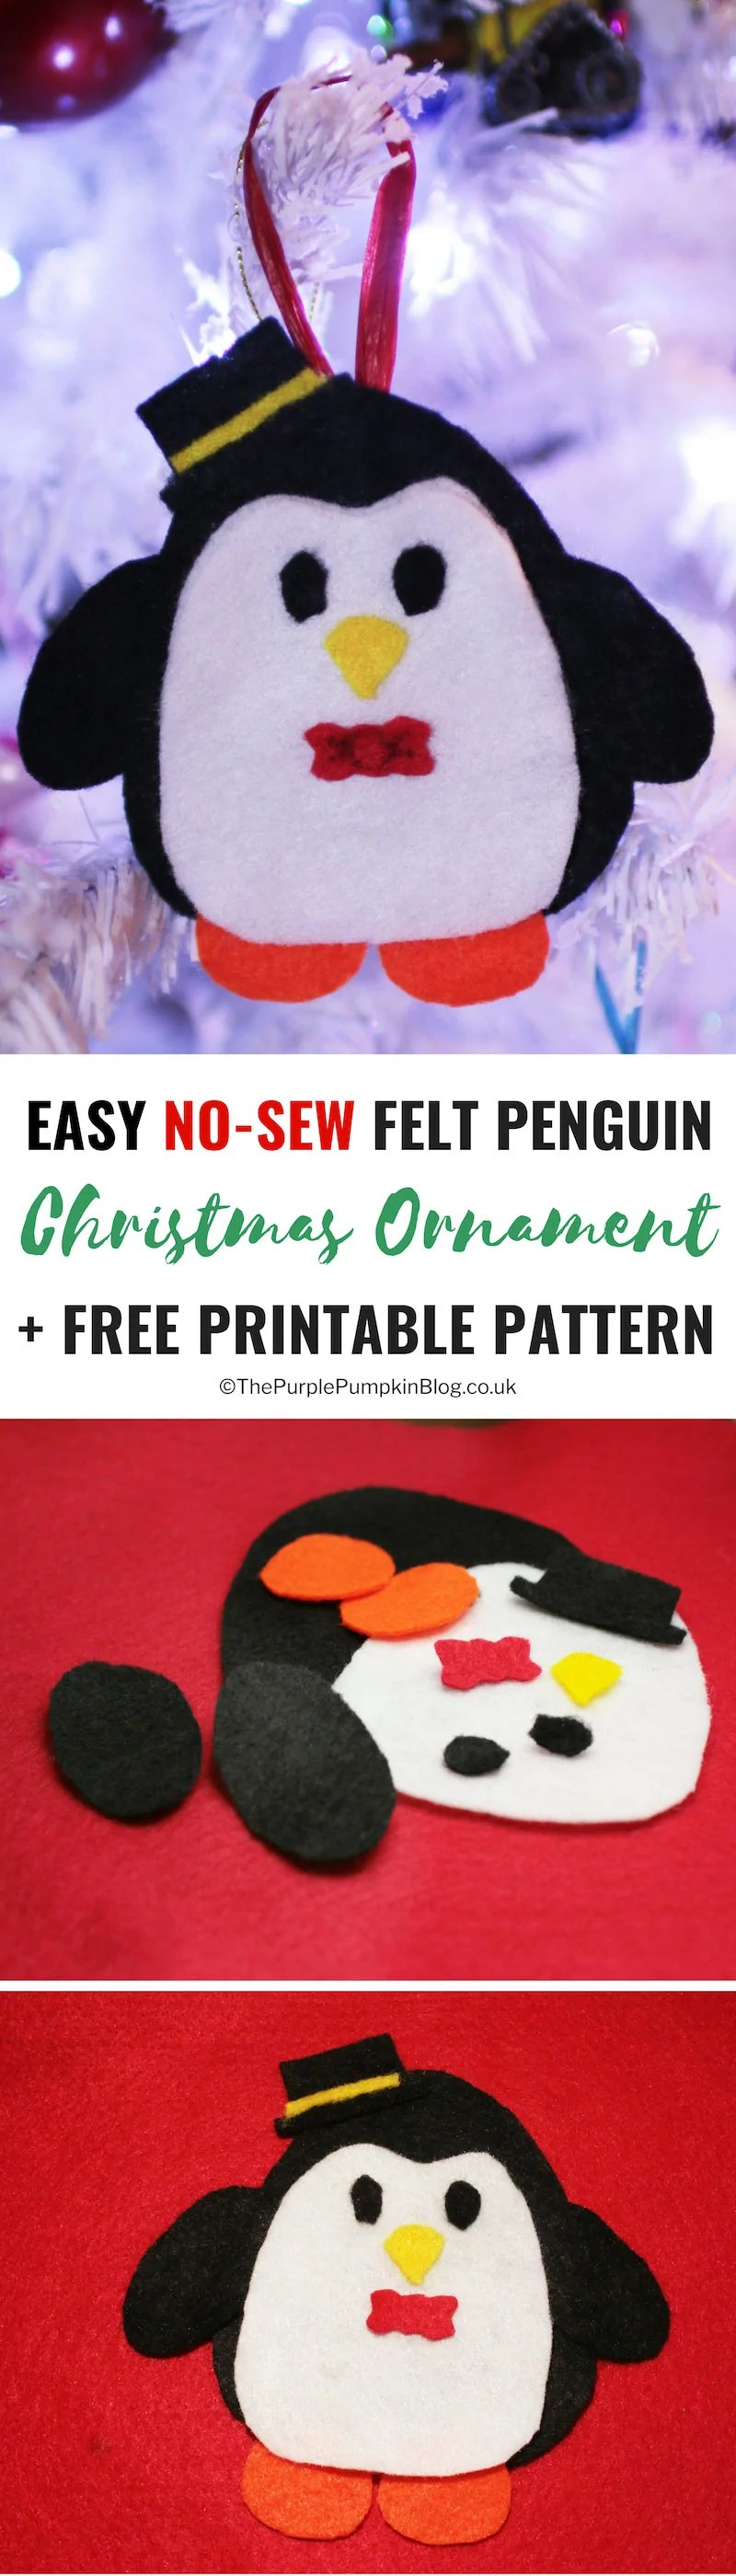 This No-Sew Felt Christmas Ornament Penguin is absolutely adorable, and so easy to make! With the Free Printable Pattern you can make a whole family of penguins to hang on your Christmas tree! All you need is some felt, glue and a piece of ribbon!